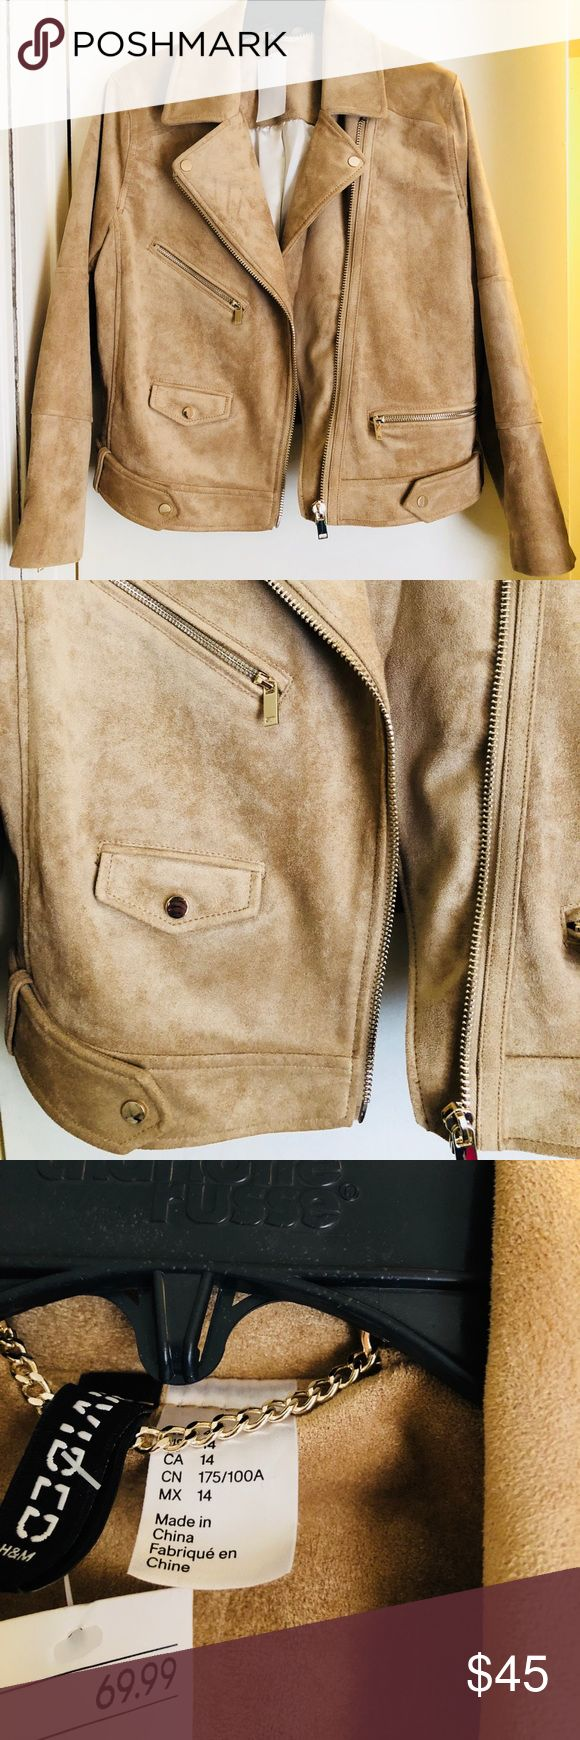 Beige/Tan Suede H&M Biker Jacket Brand new never worn with tags beige/tan suede H&M biker jacket! Awesome gem to find! Perfect for the fall/winter weather! Can be paired with a casual or formal outfit! Even though it is a size 14 it does run more so on the smaller side so I think it would somebody that is a true size 8 or 10! #hm #bikerjacket #fashiontrending #stylish2017 #gift #giftyourself #xmaaspresent #warm H&M Jackets & Coats